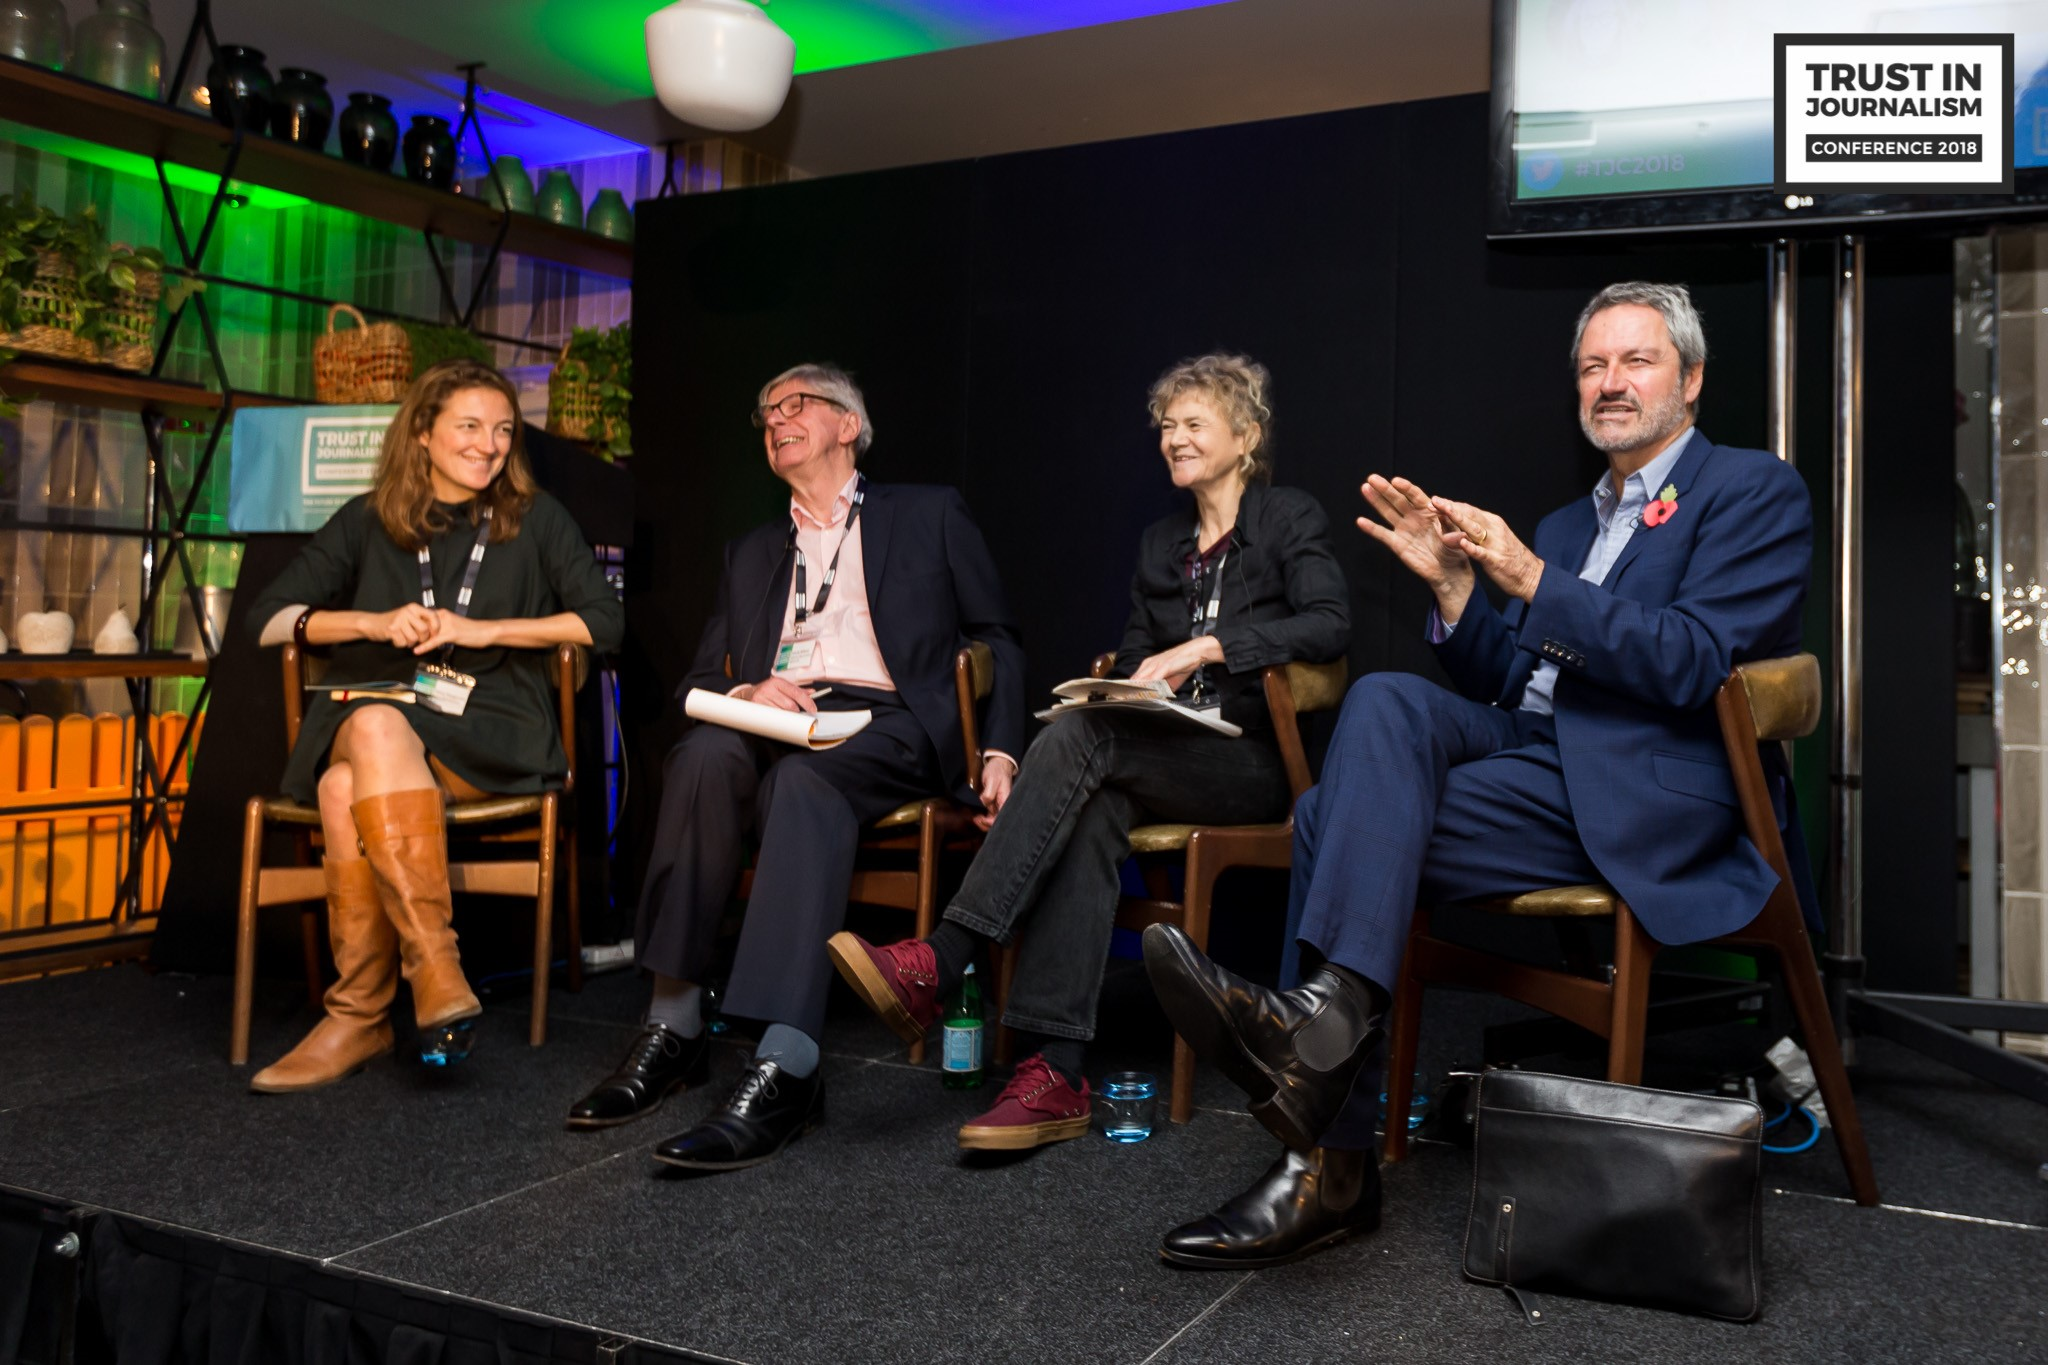 Mary Fitzgerald - Chris Elliott - Vanessa Baird - Gavin Esler BBC - IMPRESS Trust in Journalism Conference 2018